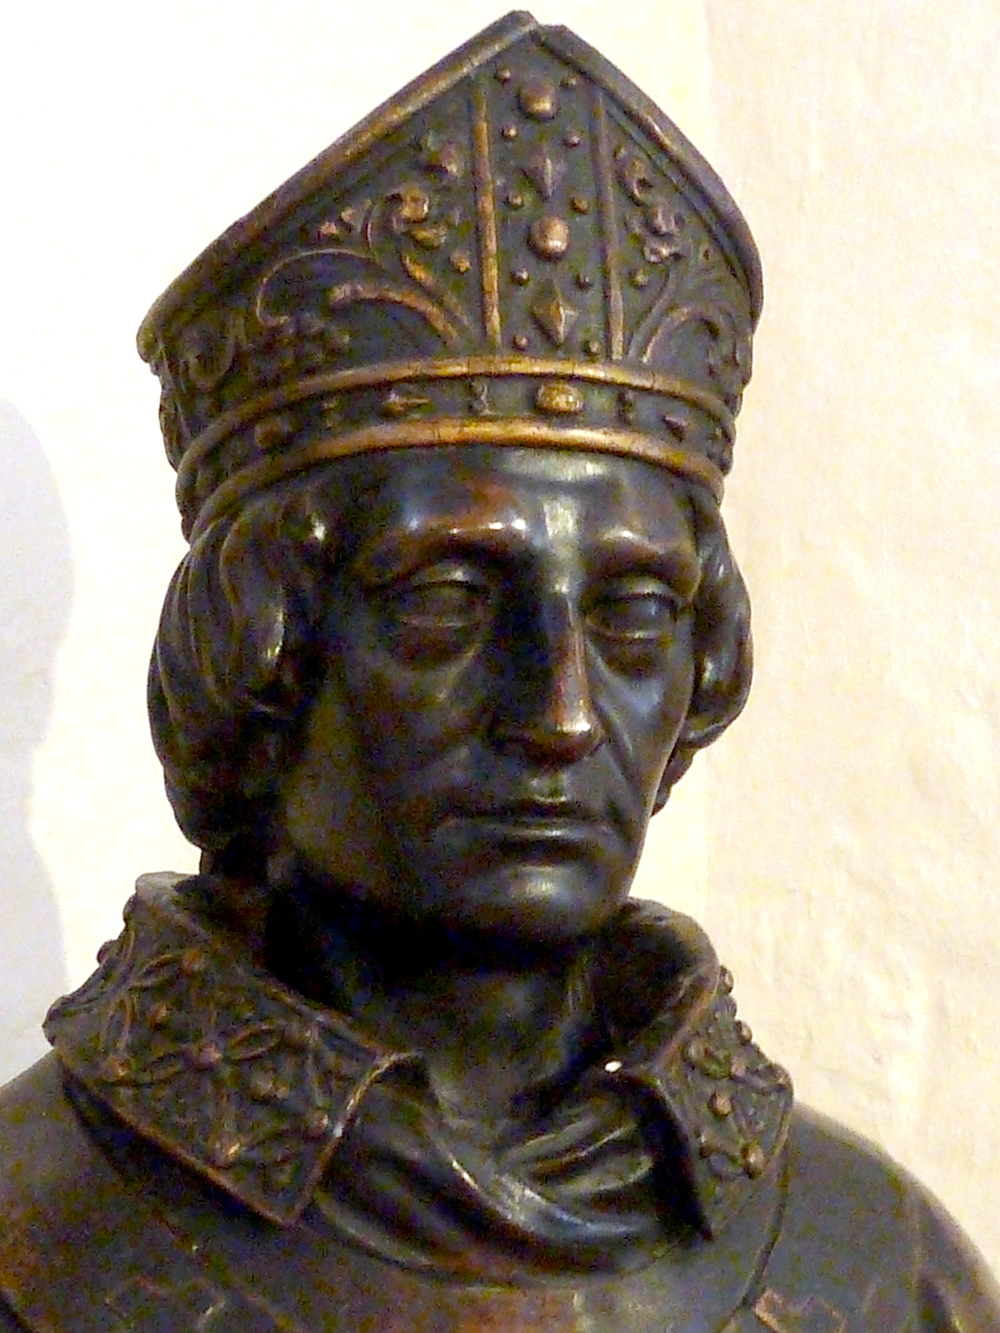 Stephen Langton (c. 1155 - 1228) Archbishop of Canterbury